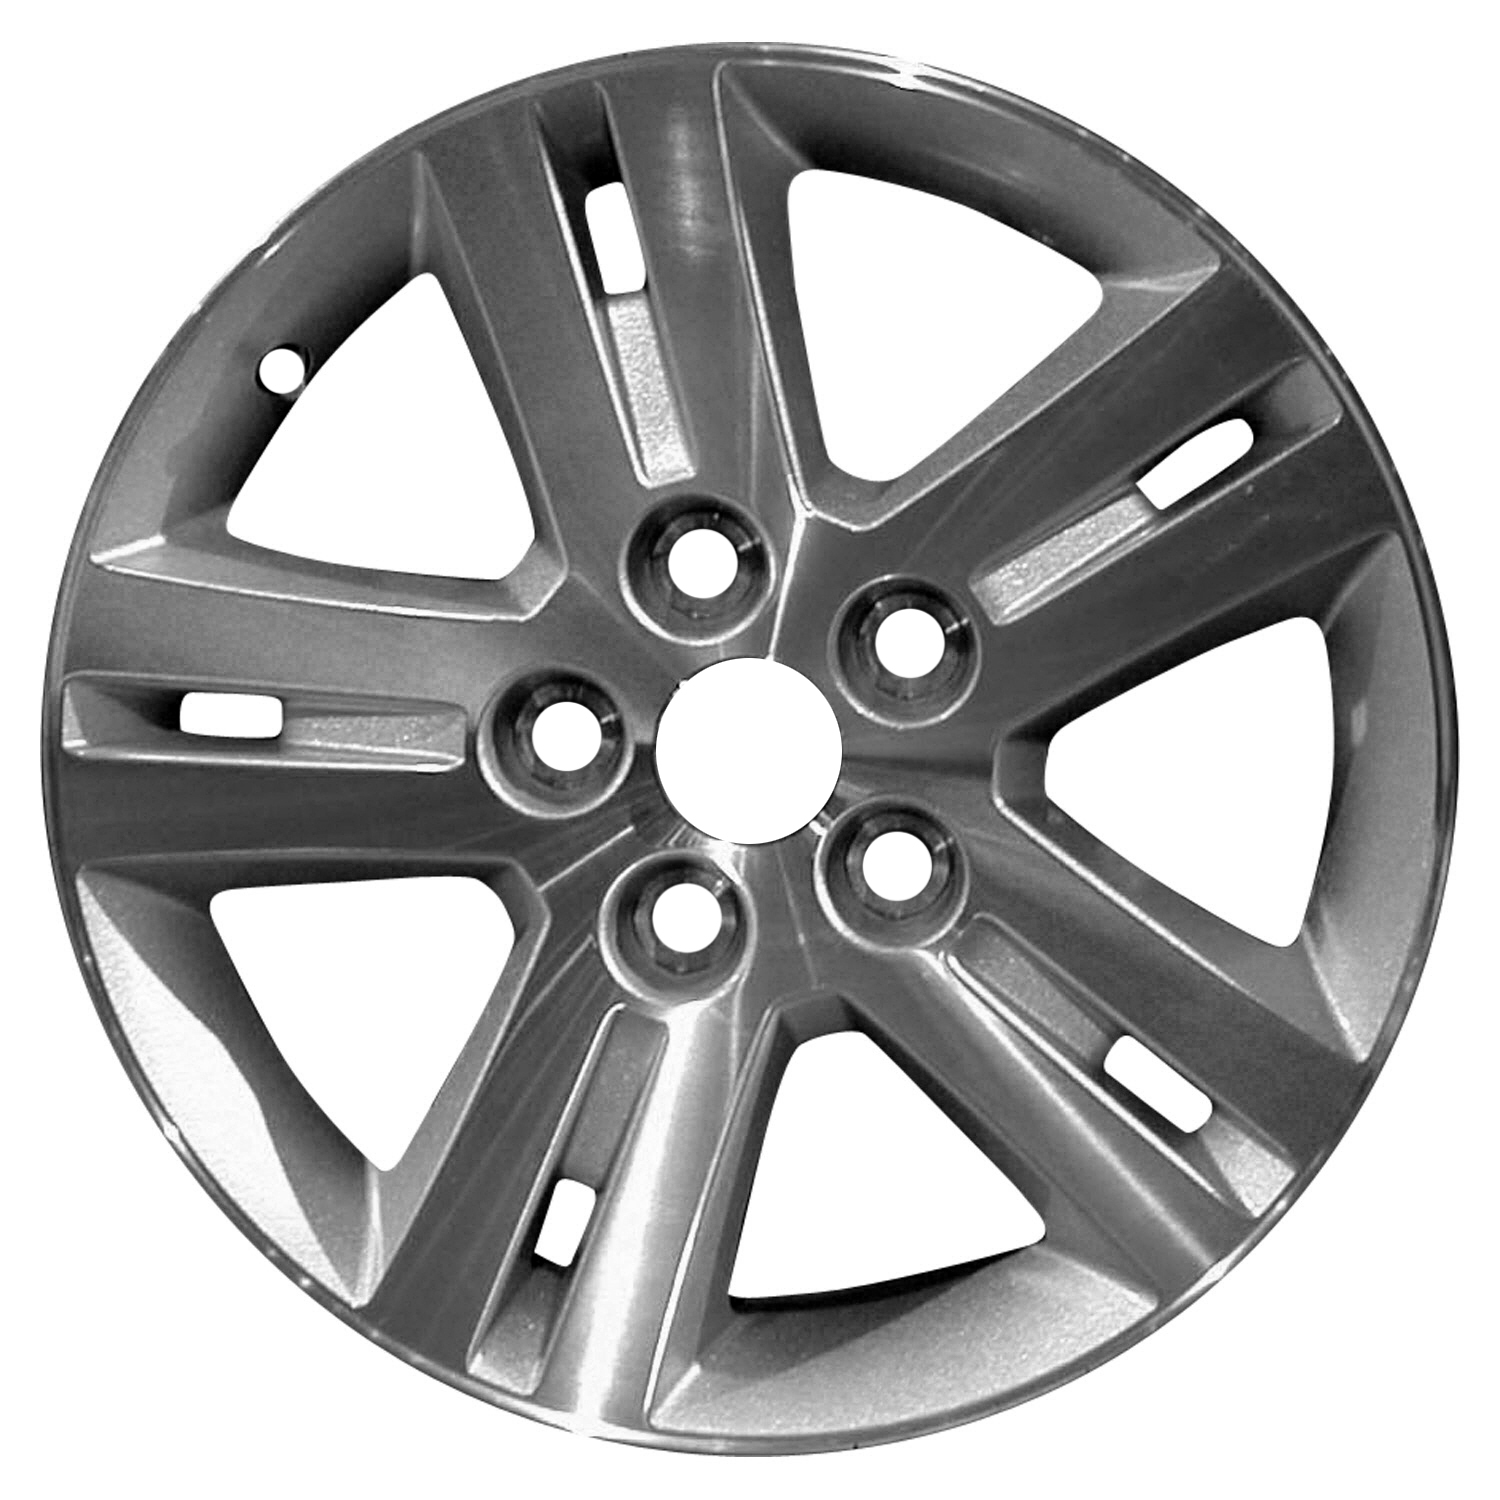 17 x 6 5 5 spoke oem dodge alloy wheel machined and charcoal 02335 2019 Dodge Ram 1500 picture 1 of 2